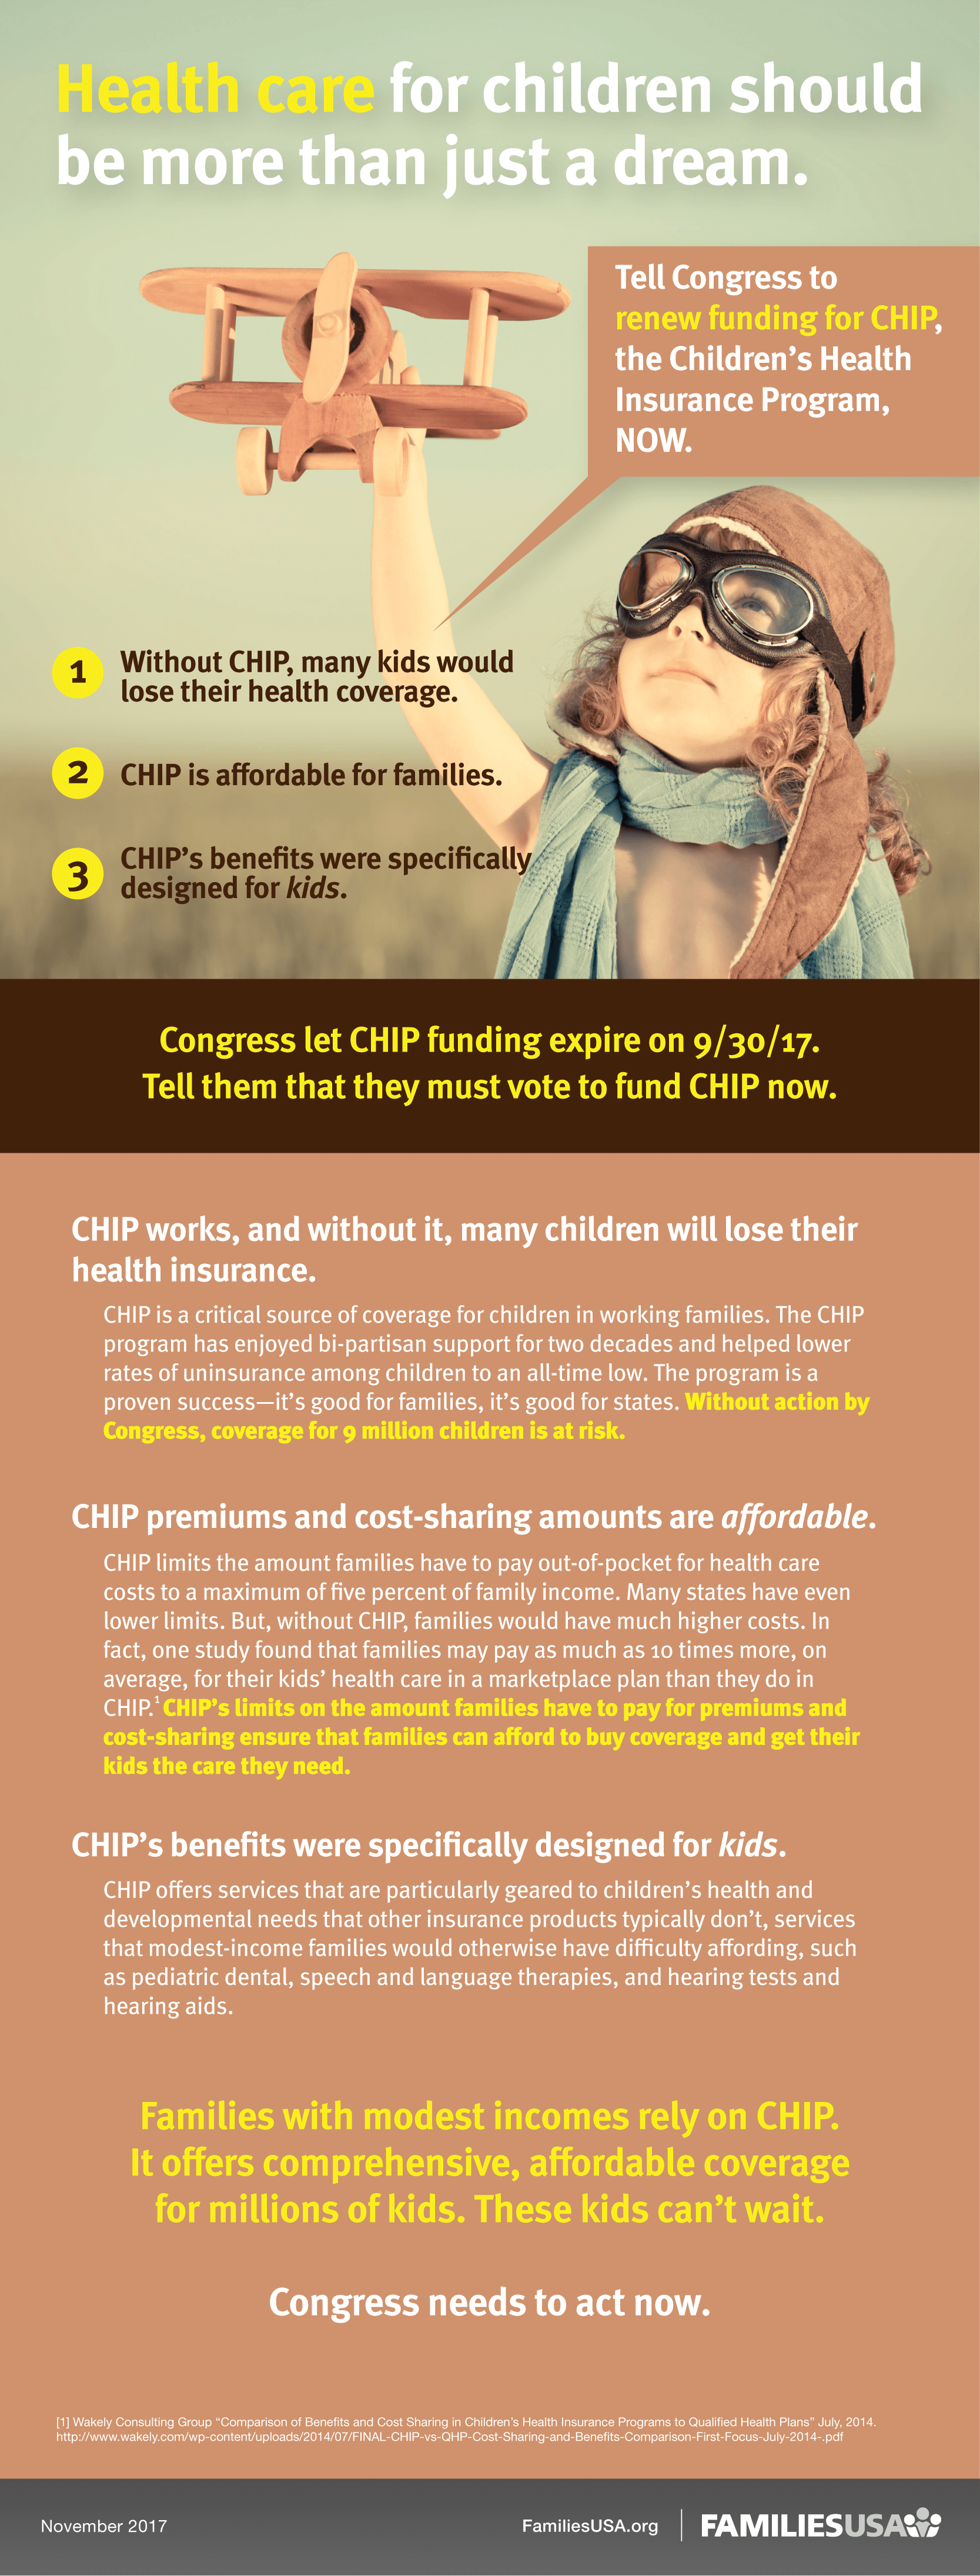 https://familiesusa.org/wp-content/uploads/2019/08/CHIP_Infographic_3-reasons-to-extend-funding_11.17.17-1.png